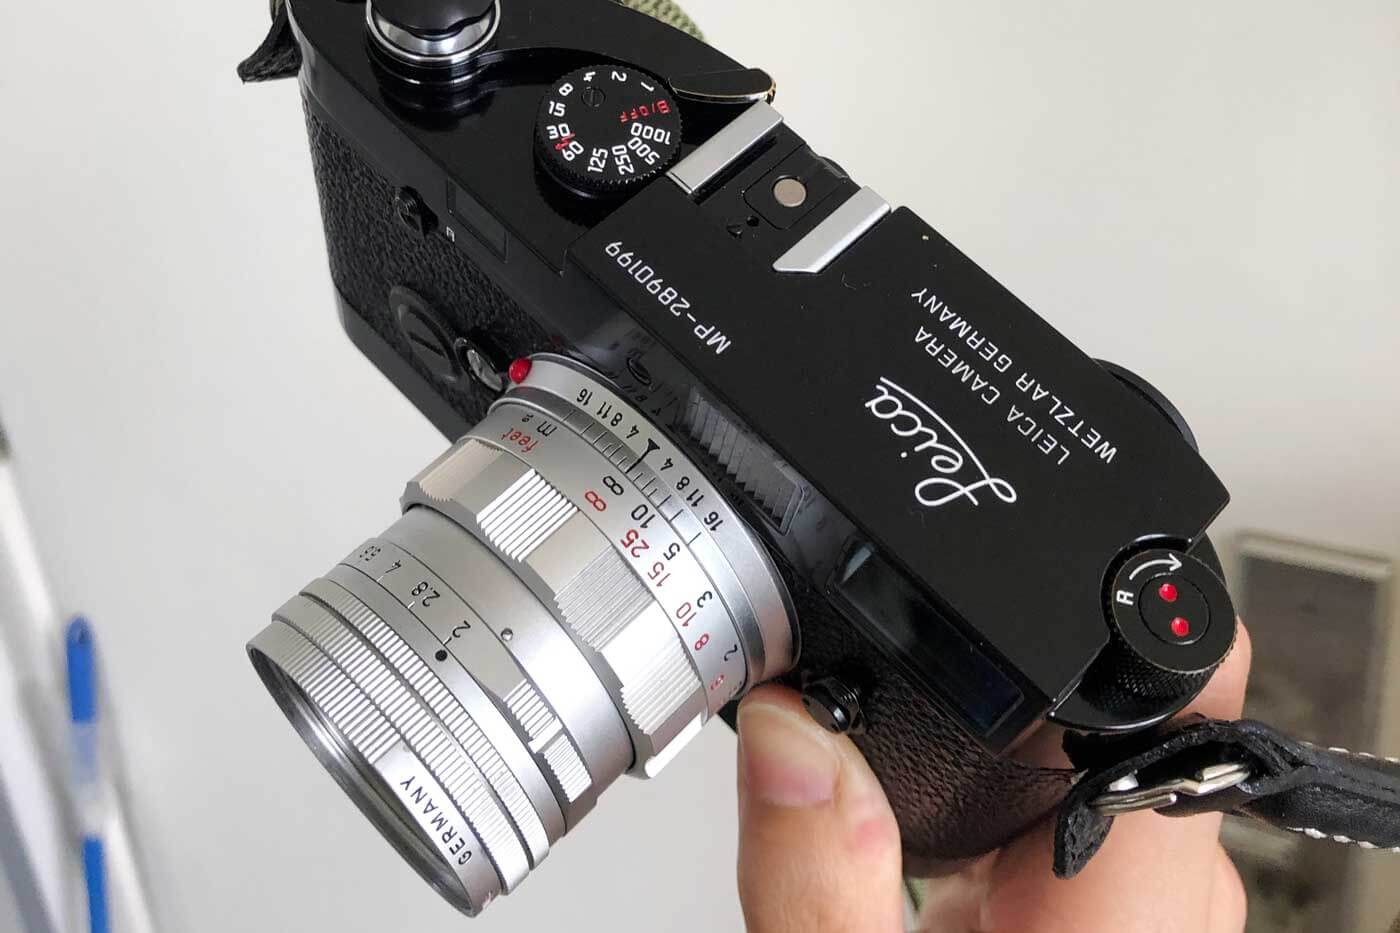 Leica-Summicron-50mm-50-f2-Rigid-Type-2-II-lens-review-barrel-flat-curl-scallop-silver-chrome-with-mp-filter-e39